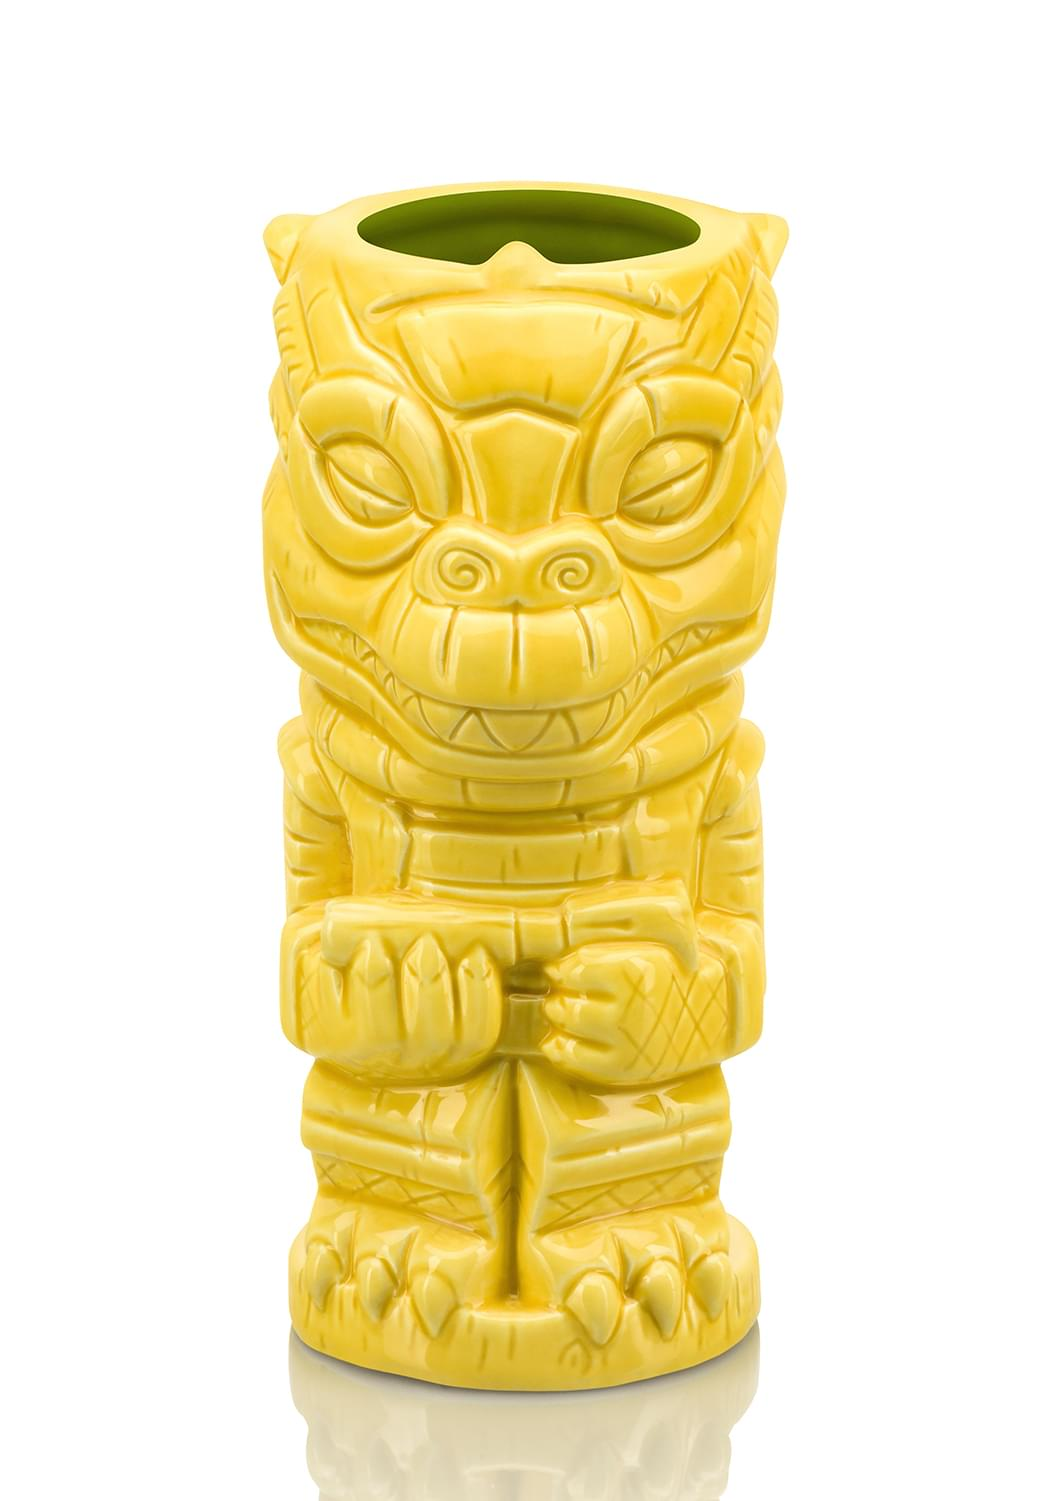 Geeki Tikis Star Wars Bossk Mug | Ceramic Tiki Style Cup | Holds 20 Ounces